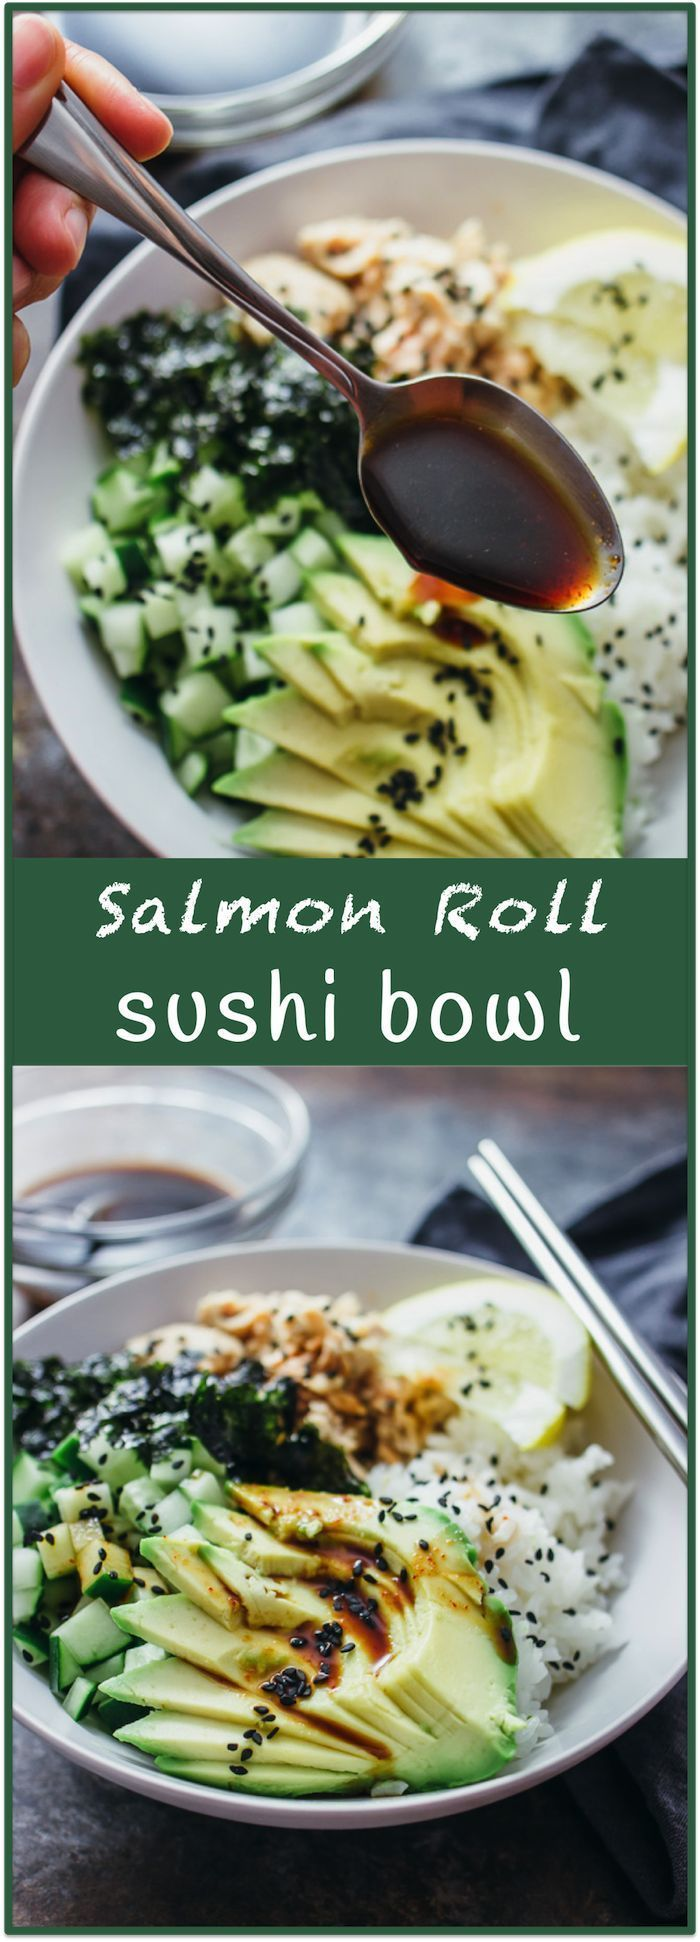 sell tiffany bracelet Salmon roll sushi bowl  Imagine your favorite sushi roll California roll Tuna roll Dynamite roll  in a bowl Almost everything tastes better in bowl form think burritos and sushi is no exception This delicious sushi bowl recipe includes salmon